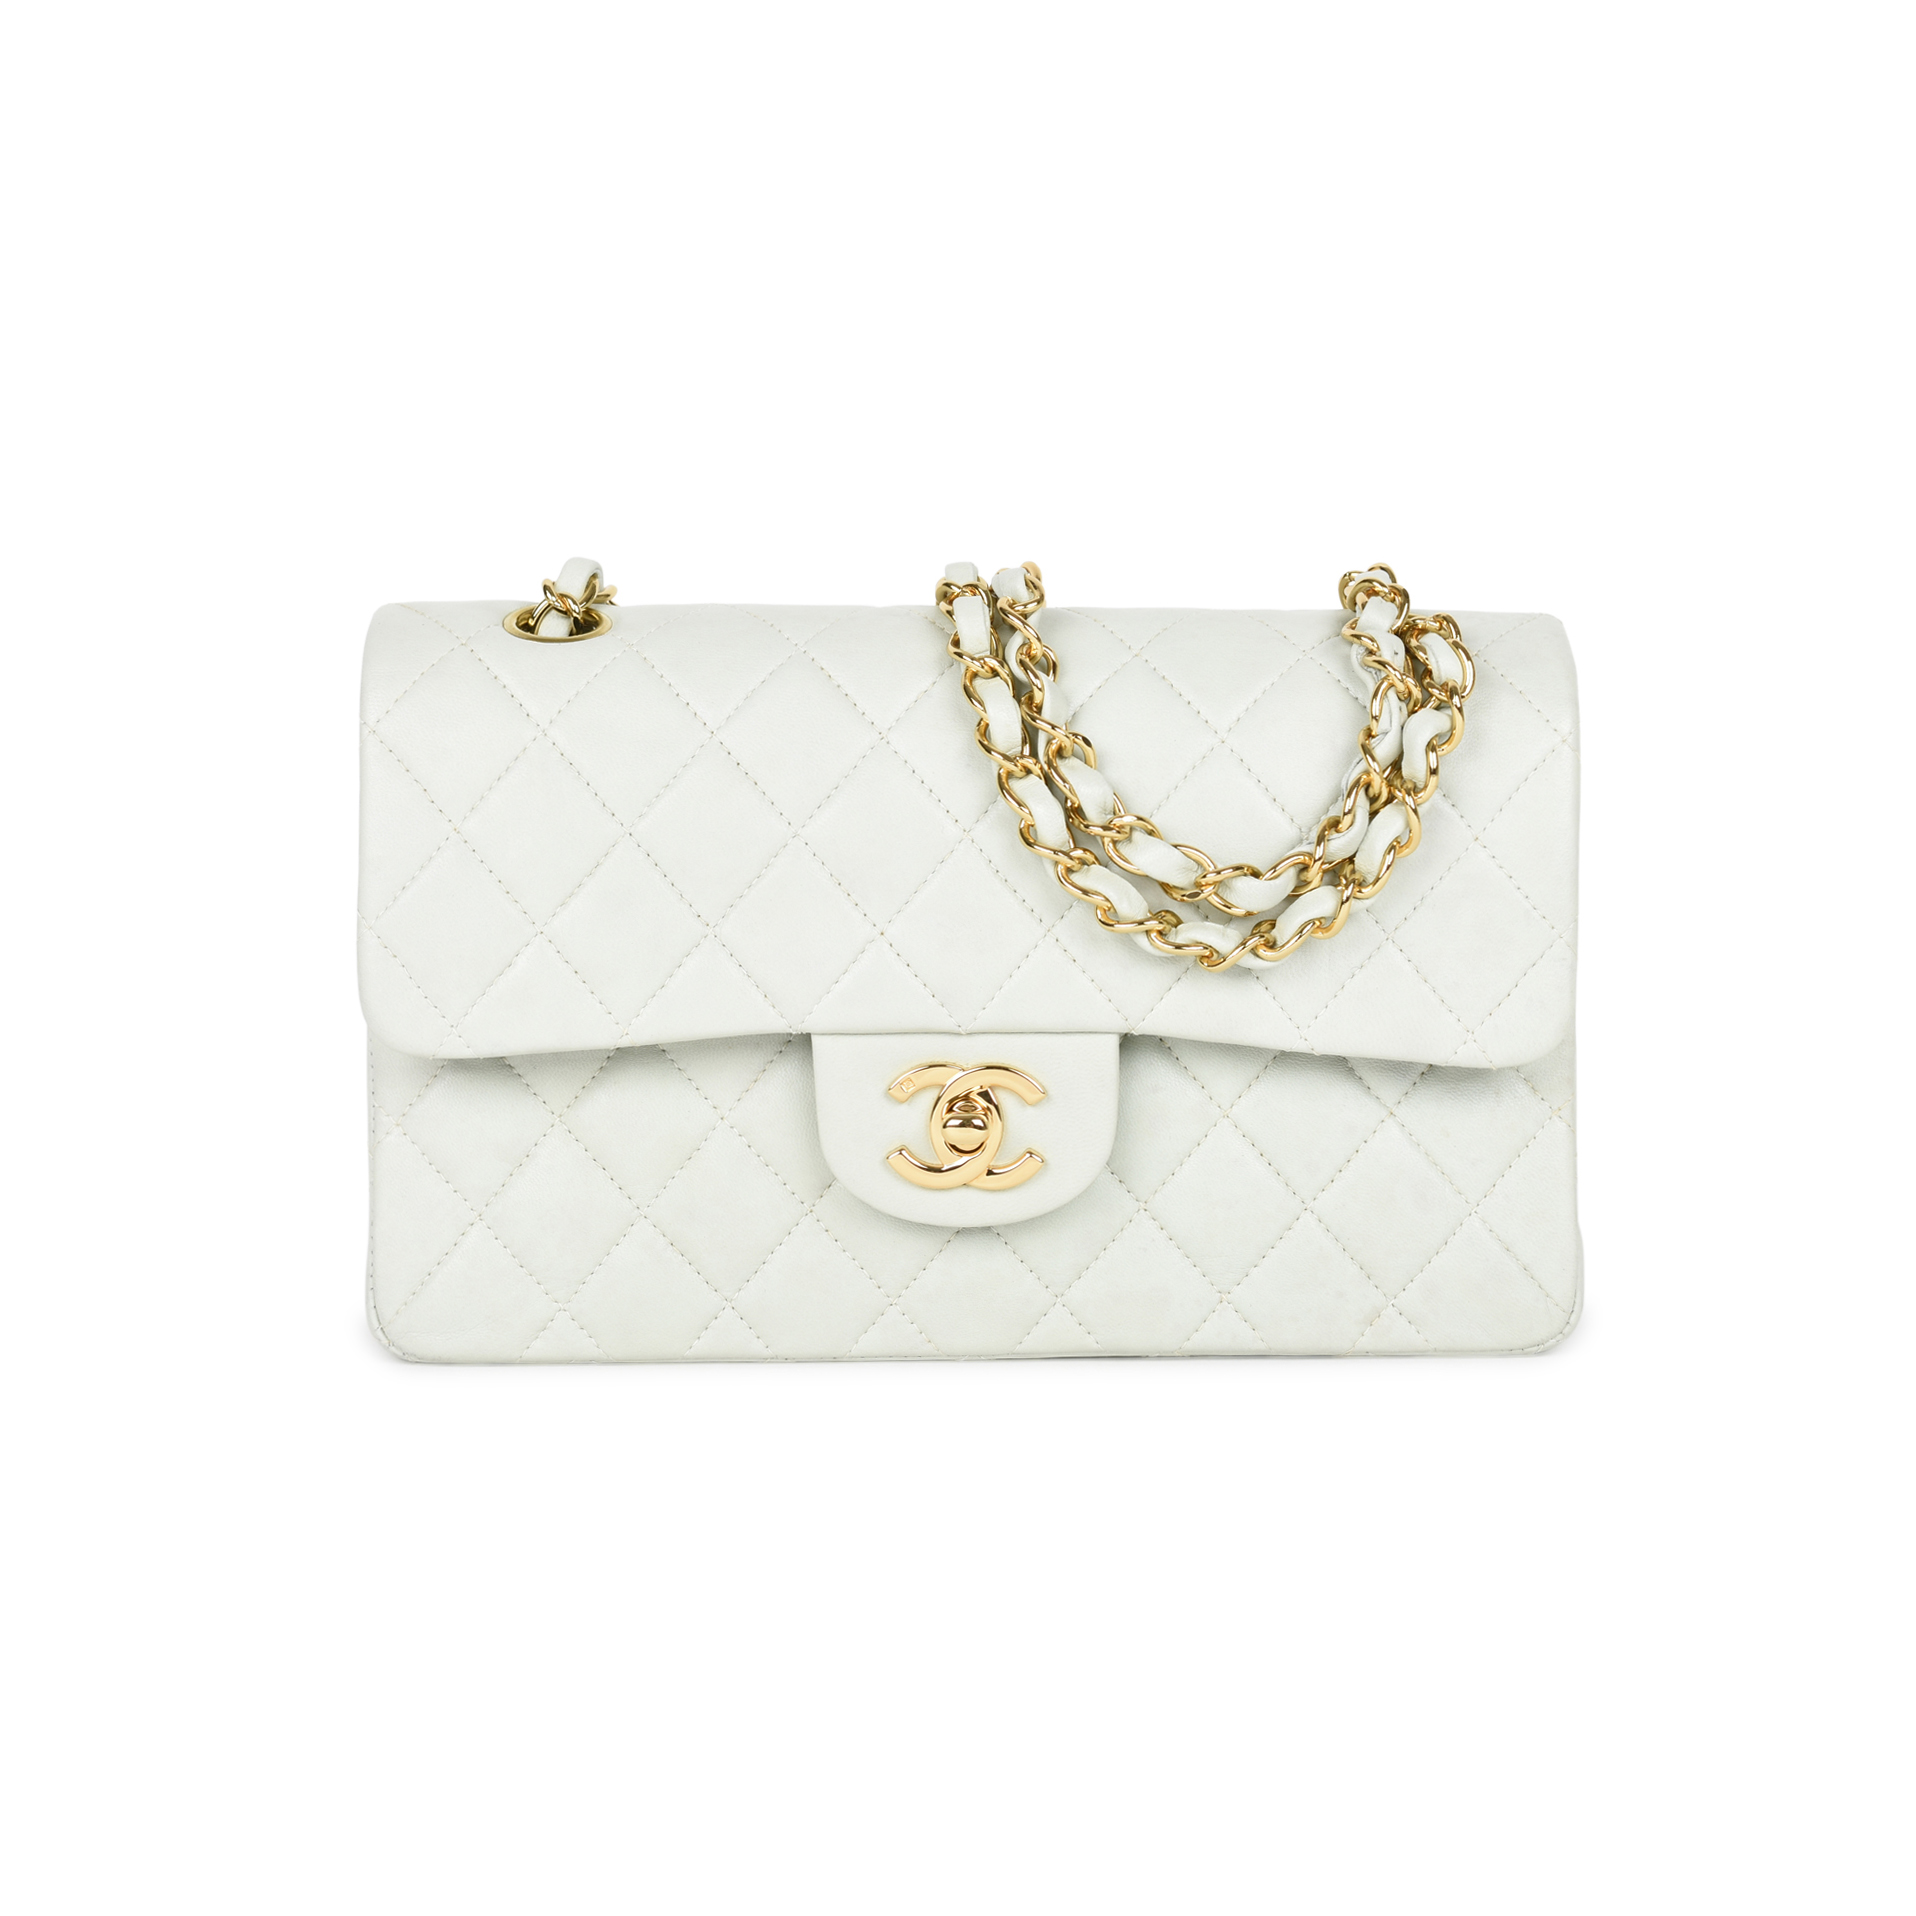 e0d0c68304379d Authentic Second Hand Chanel Mint Green Small Classic Flap (PSS-051-00382)  | THE FIFTH COLLECTION